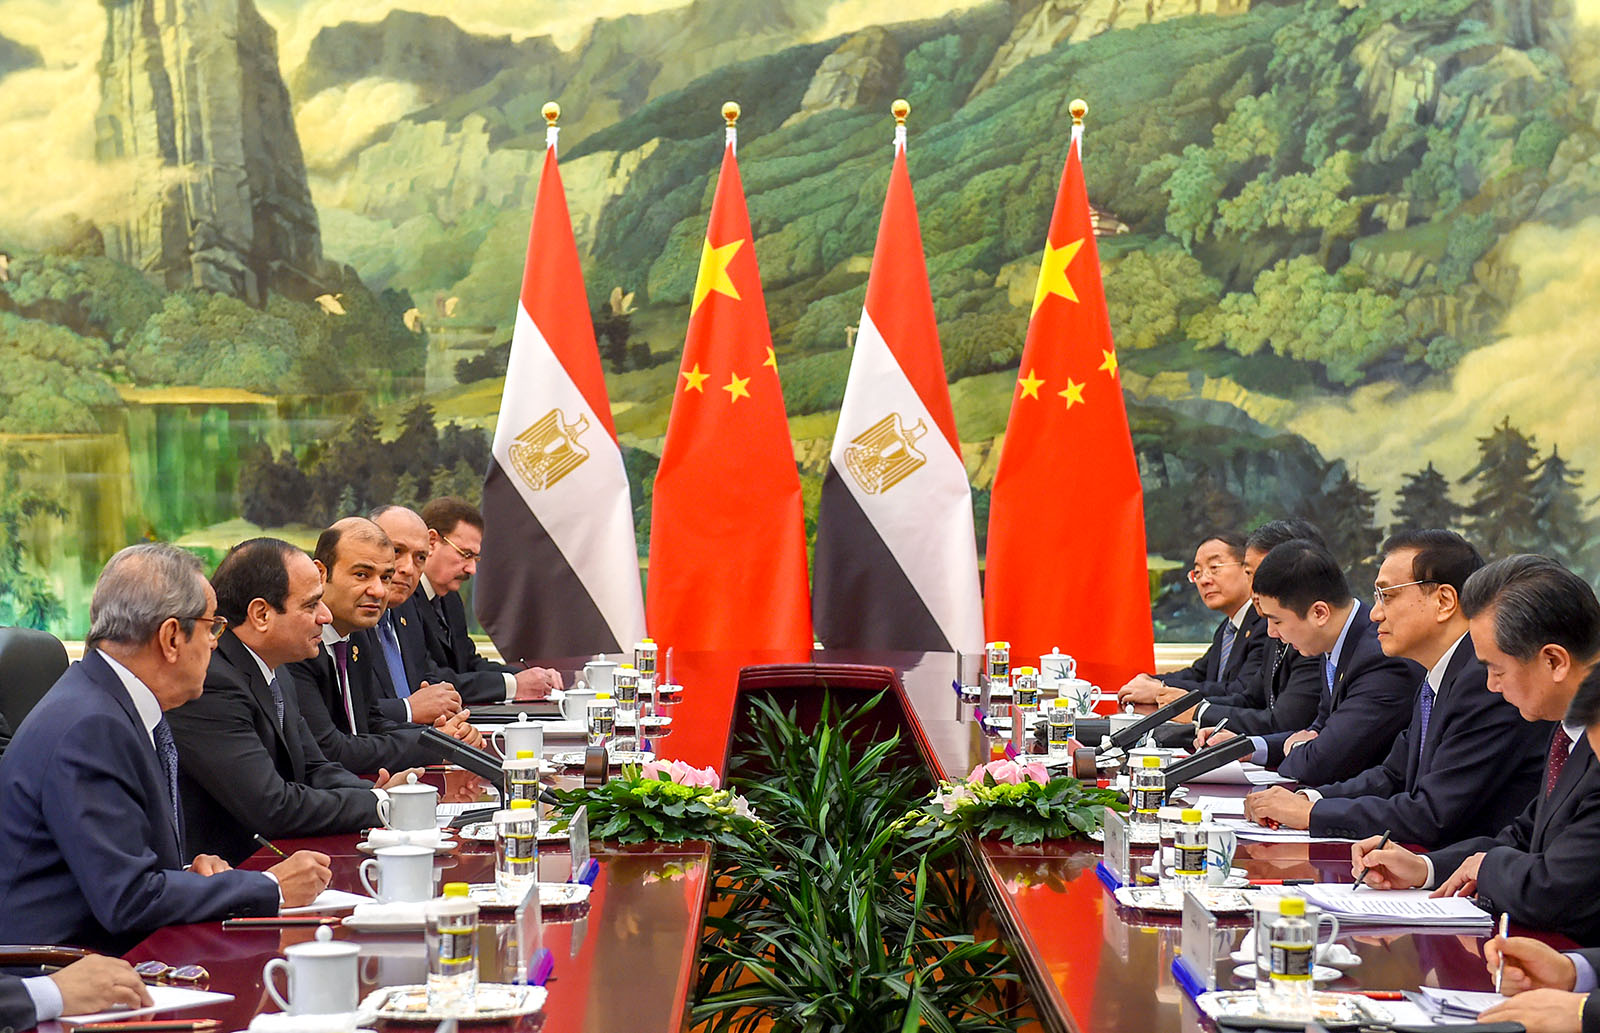 Chinese and Egyptian bilateral discussion at conference table.